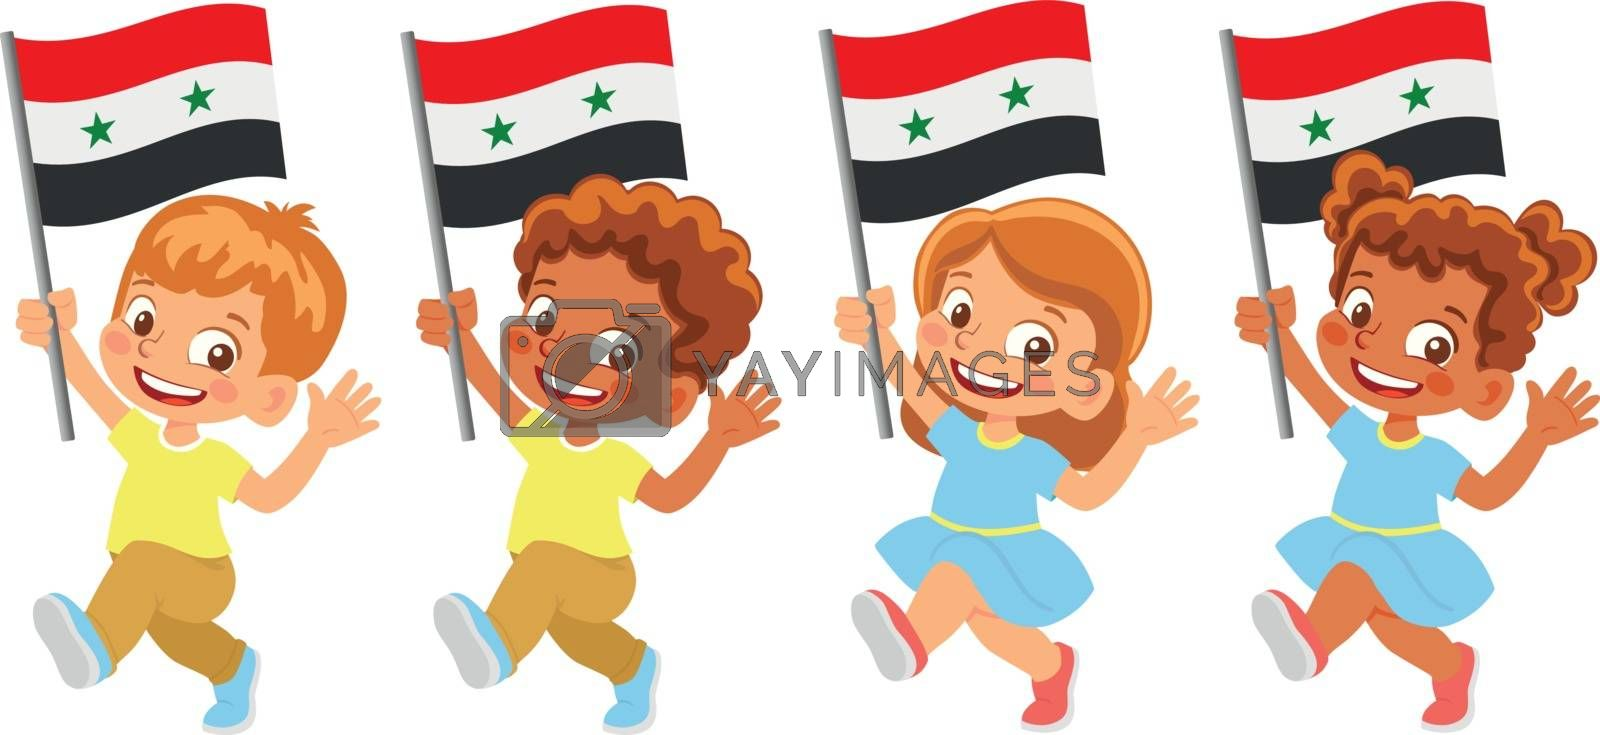 Syria flag in hand. Children holding flag. National flag of Syria vector